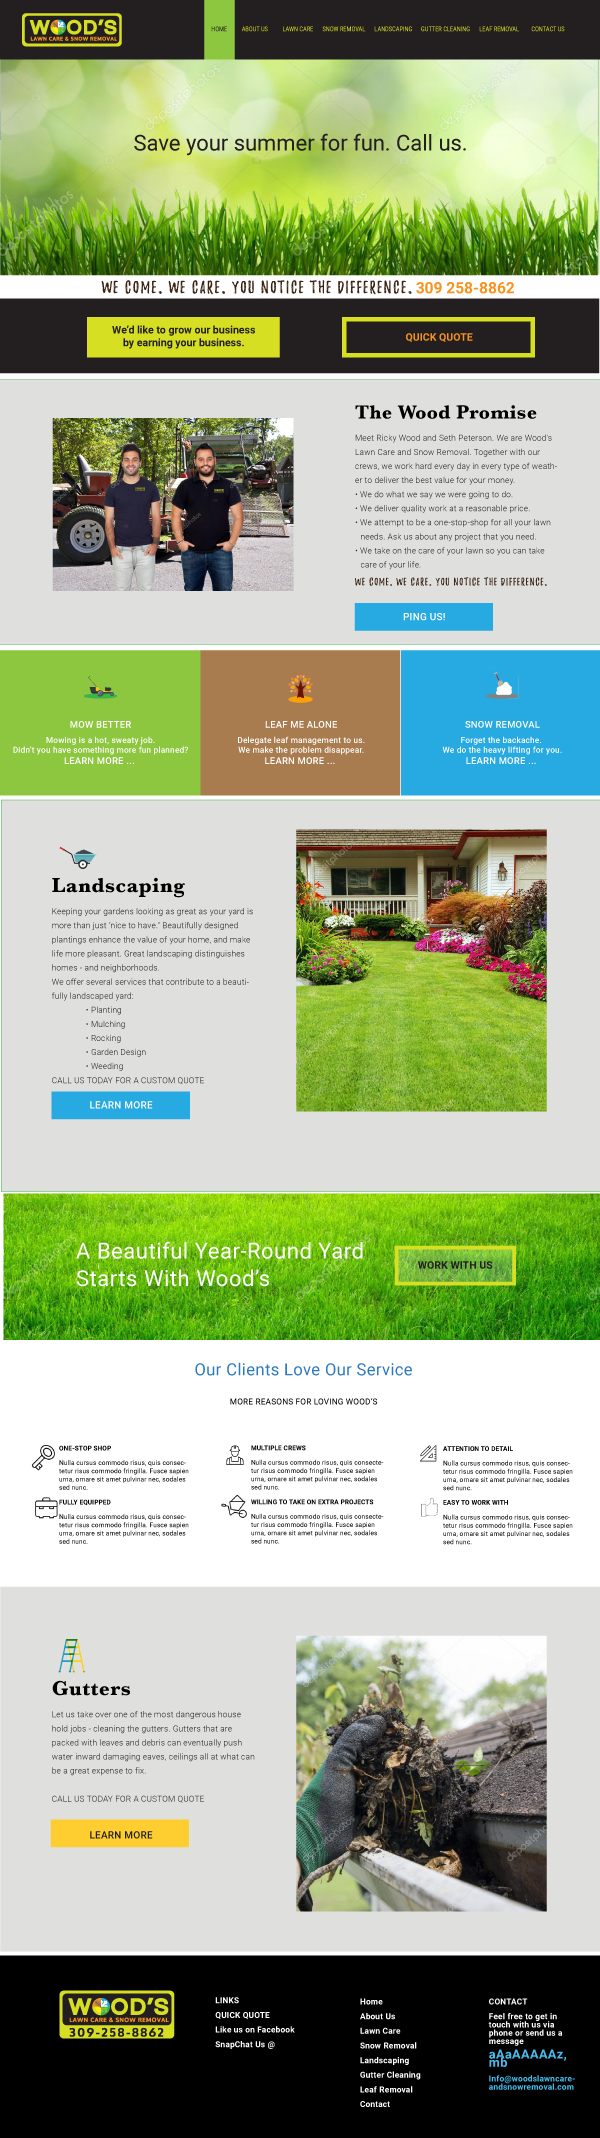 Wood's Lawn Care and Snow Removal Website Design